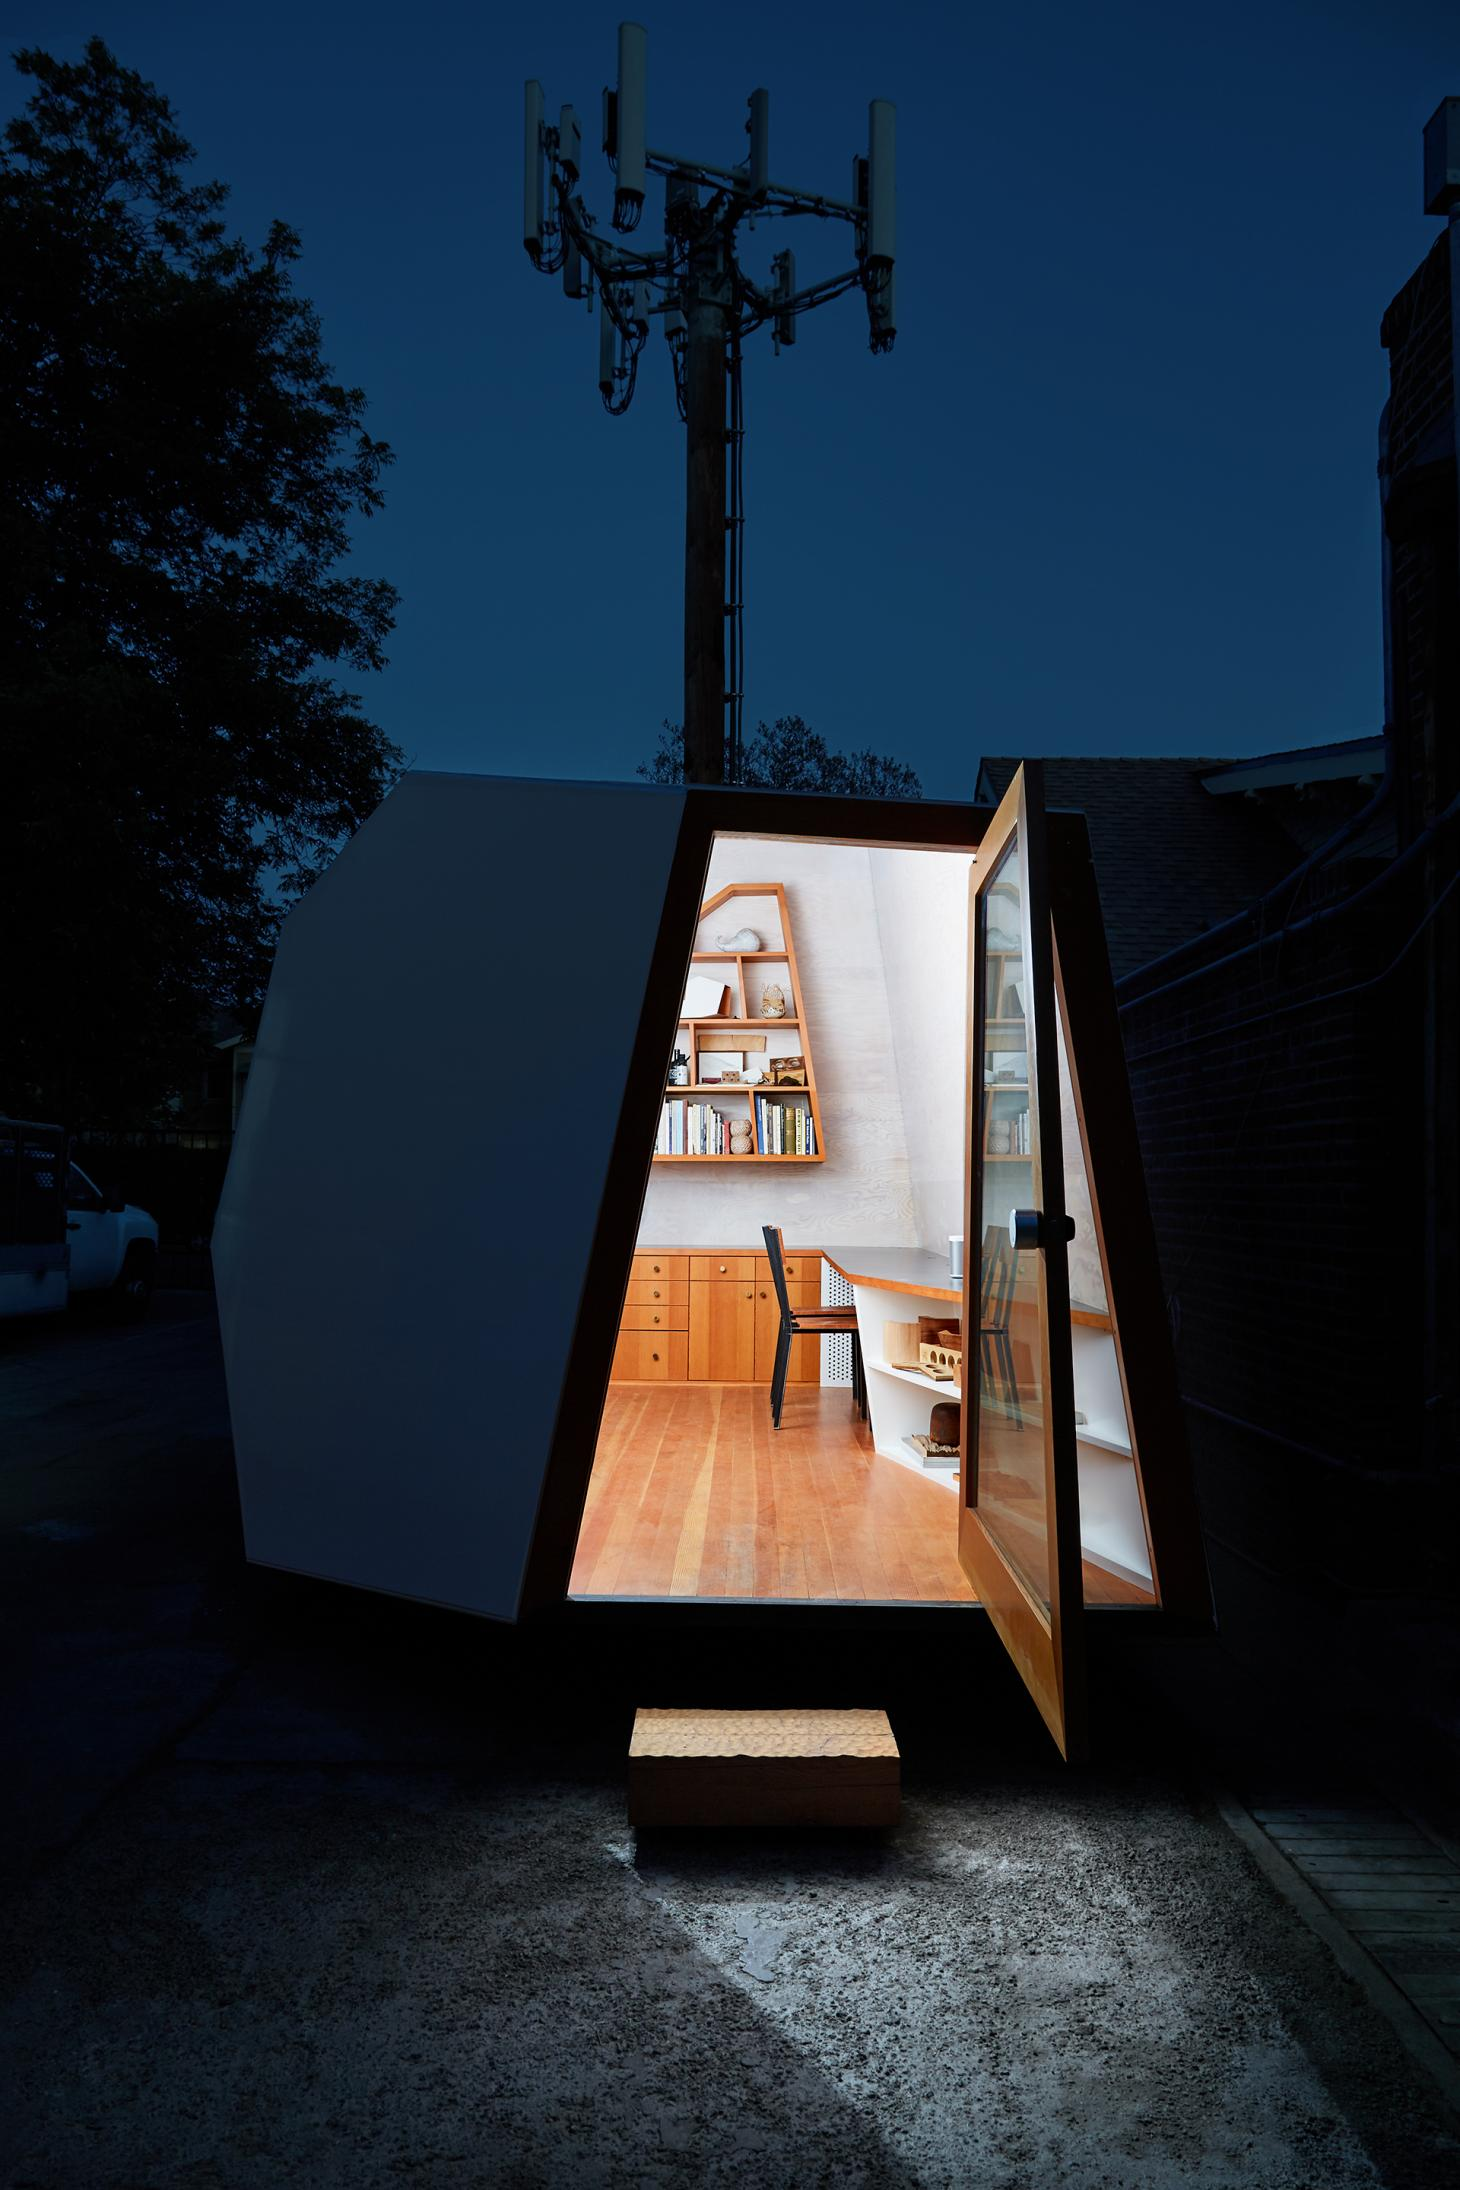 Knowhow Shop micro office in Los Angeles by night